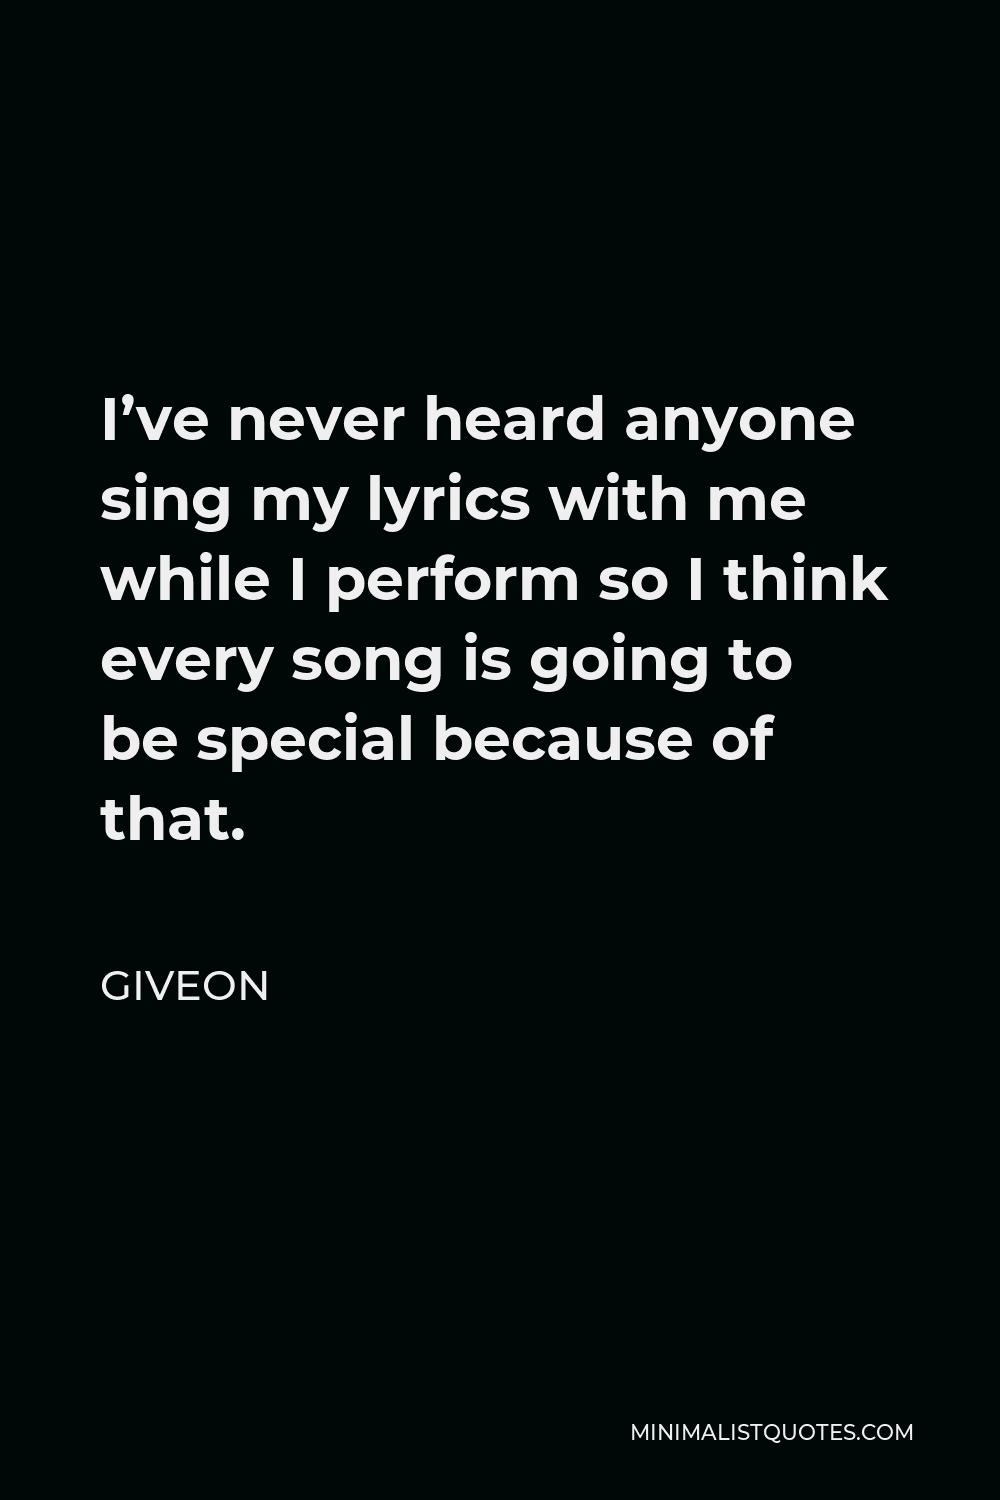 Giveon Quote - I've never heard anyone sing my lyrics with me while I perform so I think every song is going to be special because of that.